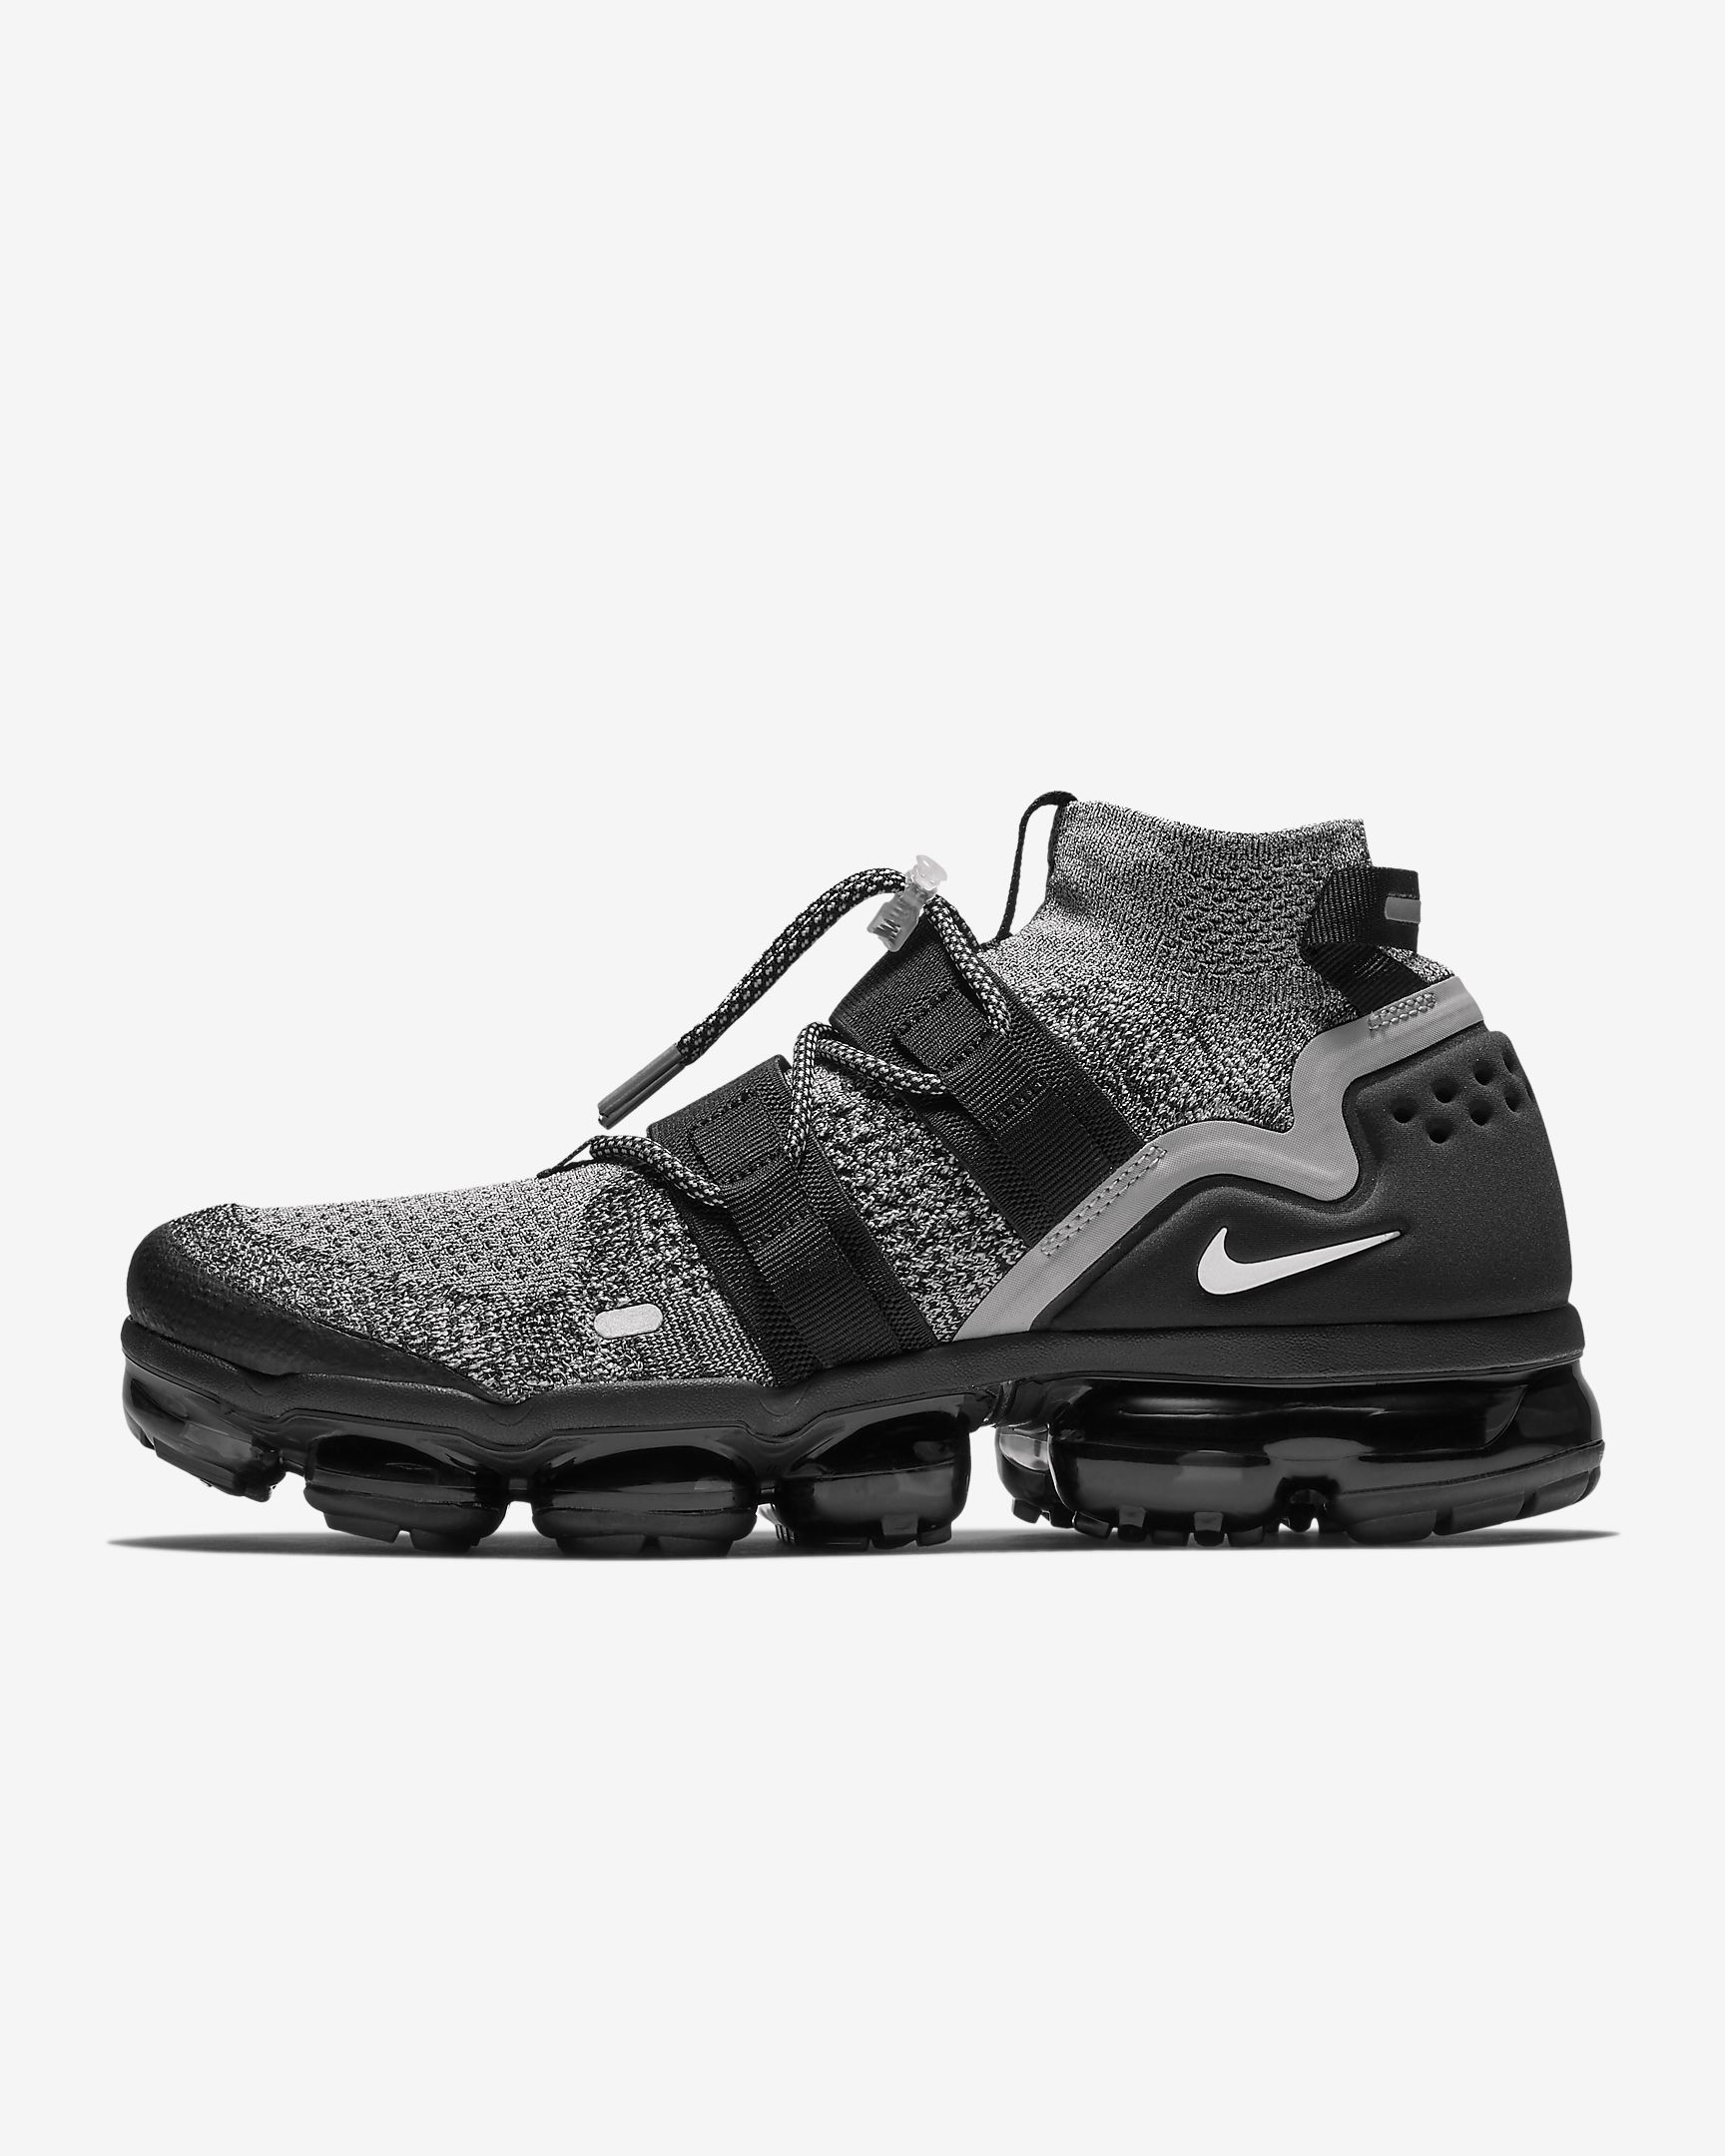 b444cd4e97 Air VaporMax Flyknit Utility Shoe in 2019 | ID | Nike air vapormax ...